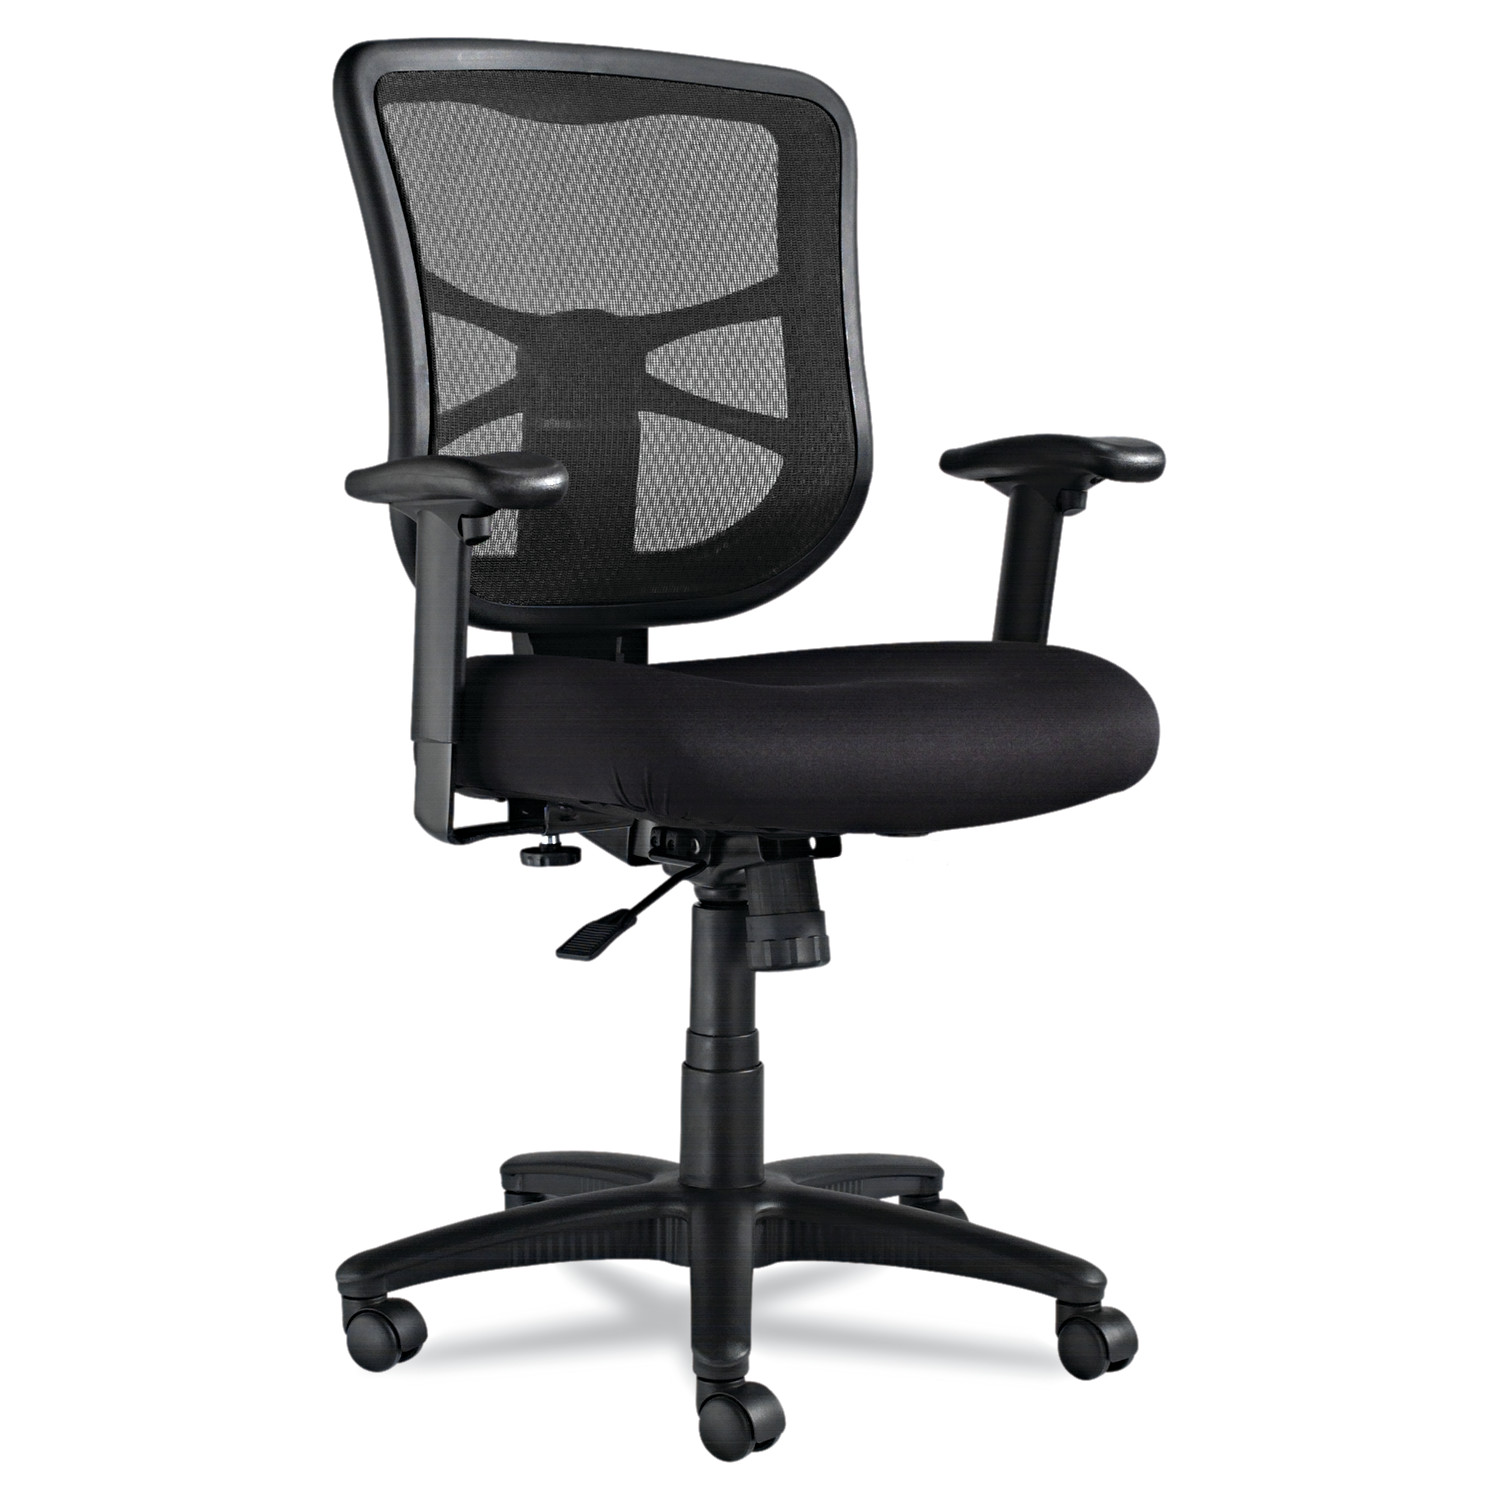 Alera Alera Elusion Series Mesh Mid-Back Swivel/Tilt Chair, Black